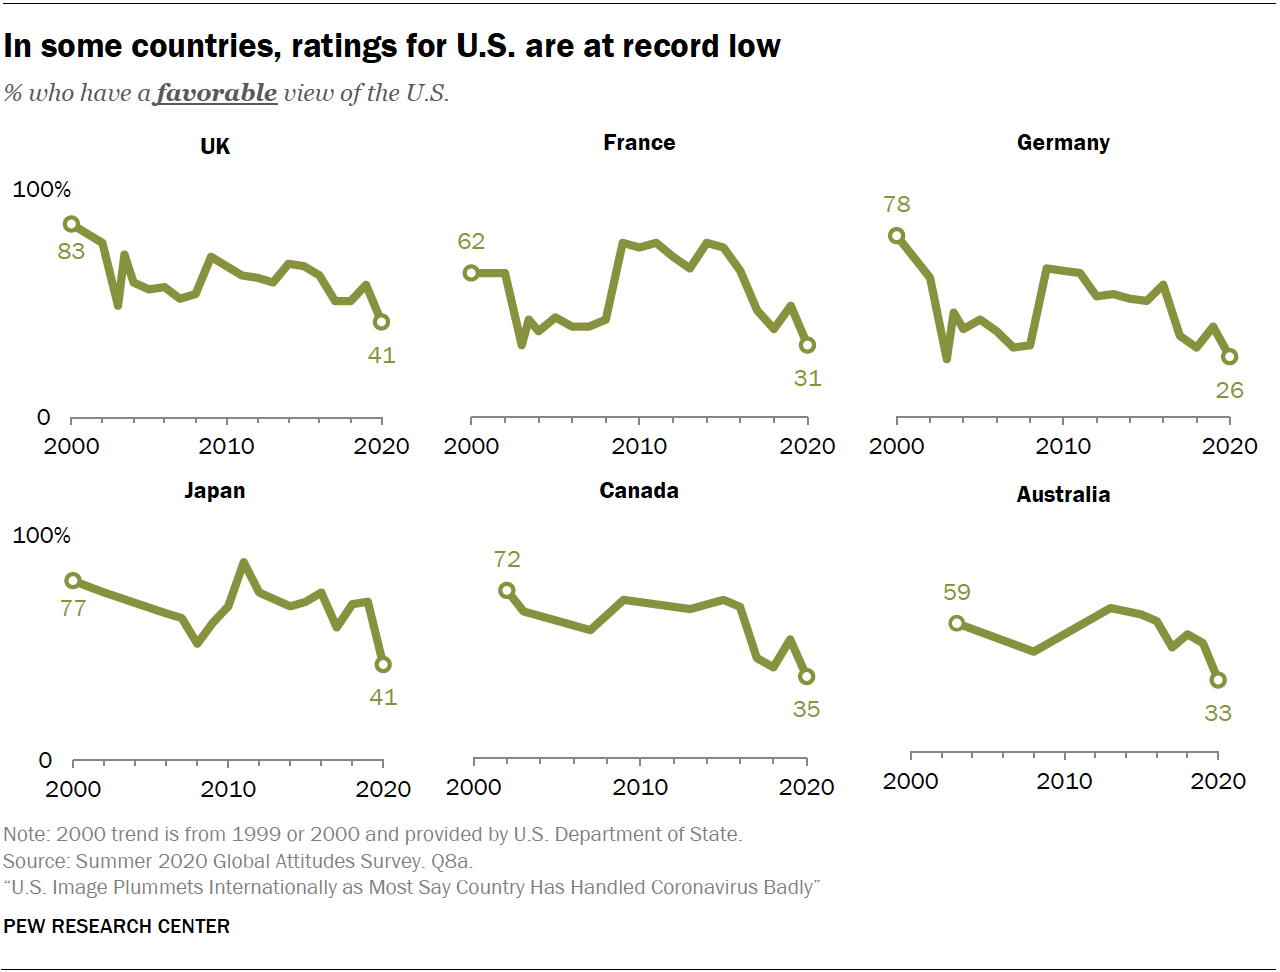 In some countries, ratings for U.S. are at record low